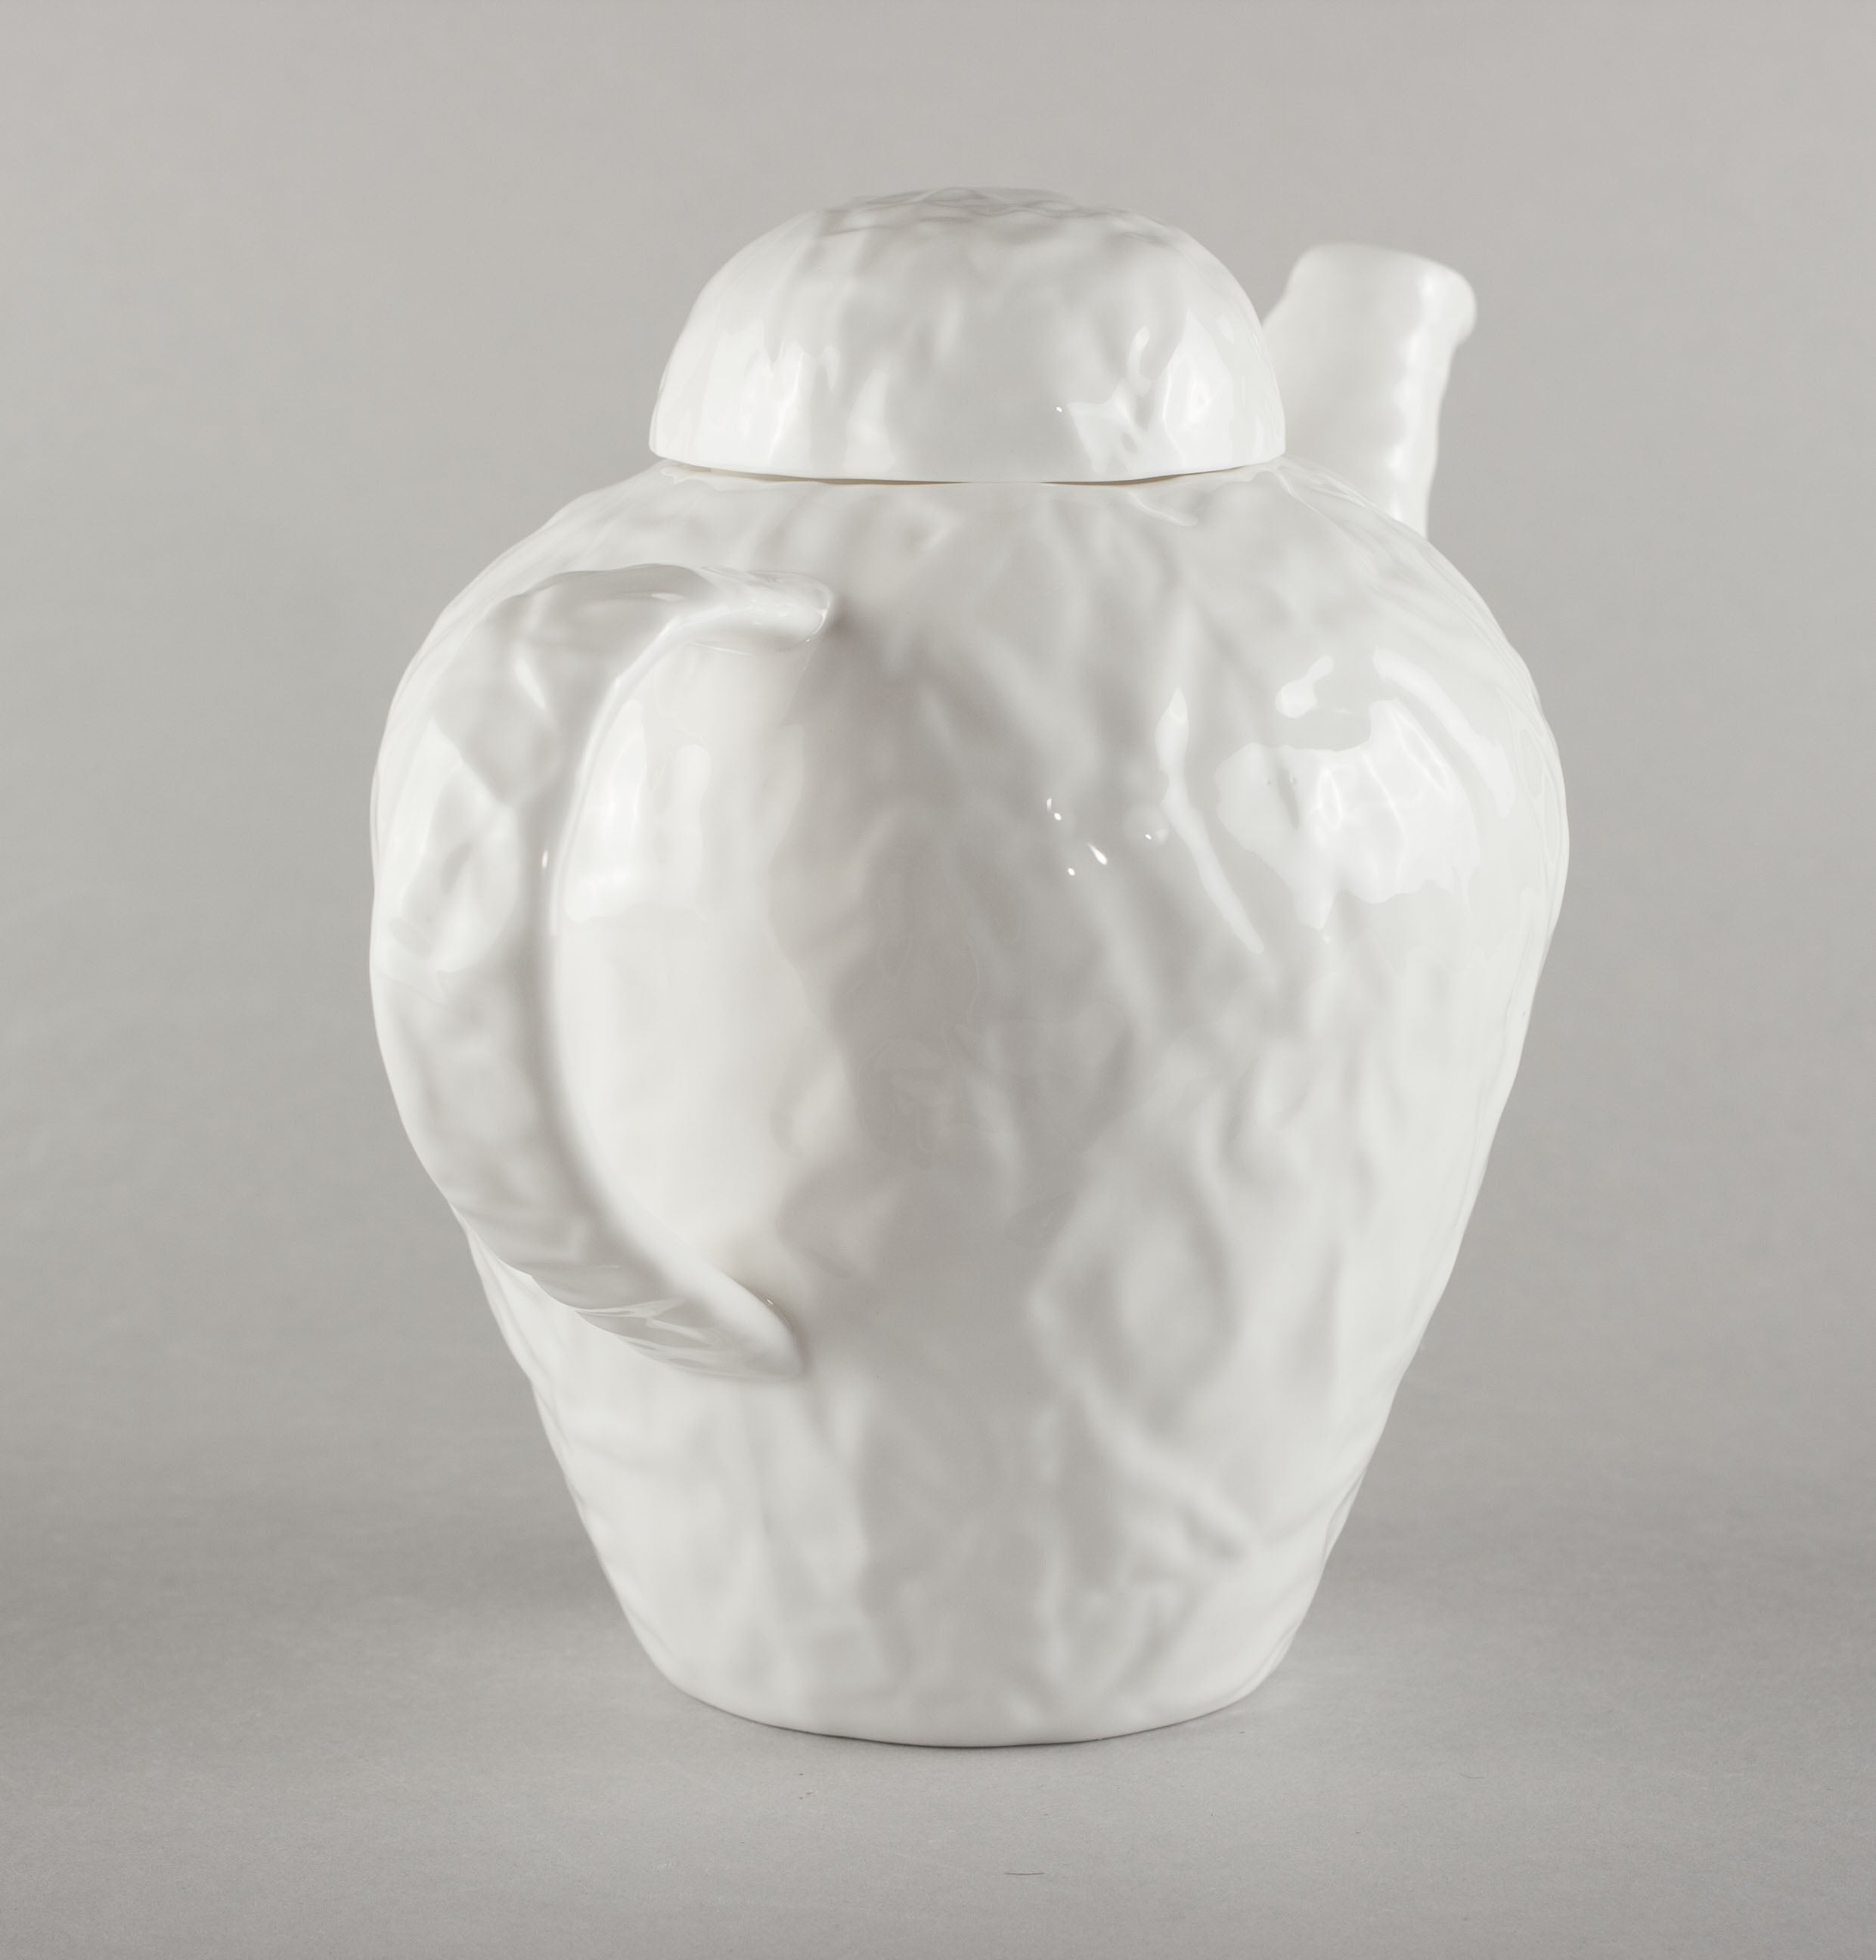 Porcelain Crumpled Kettle